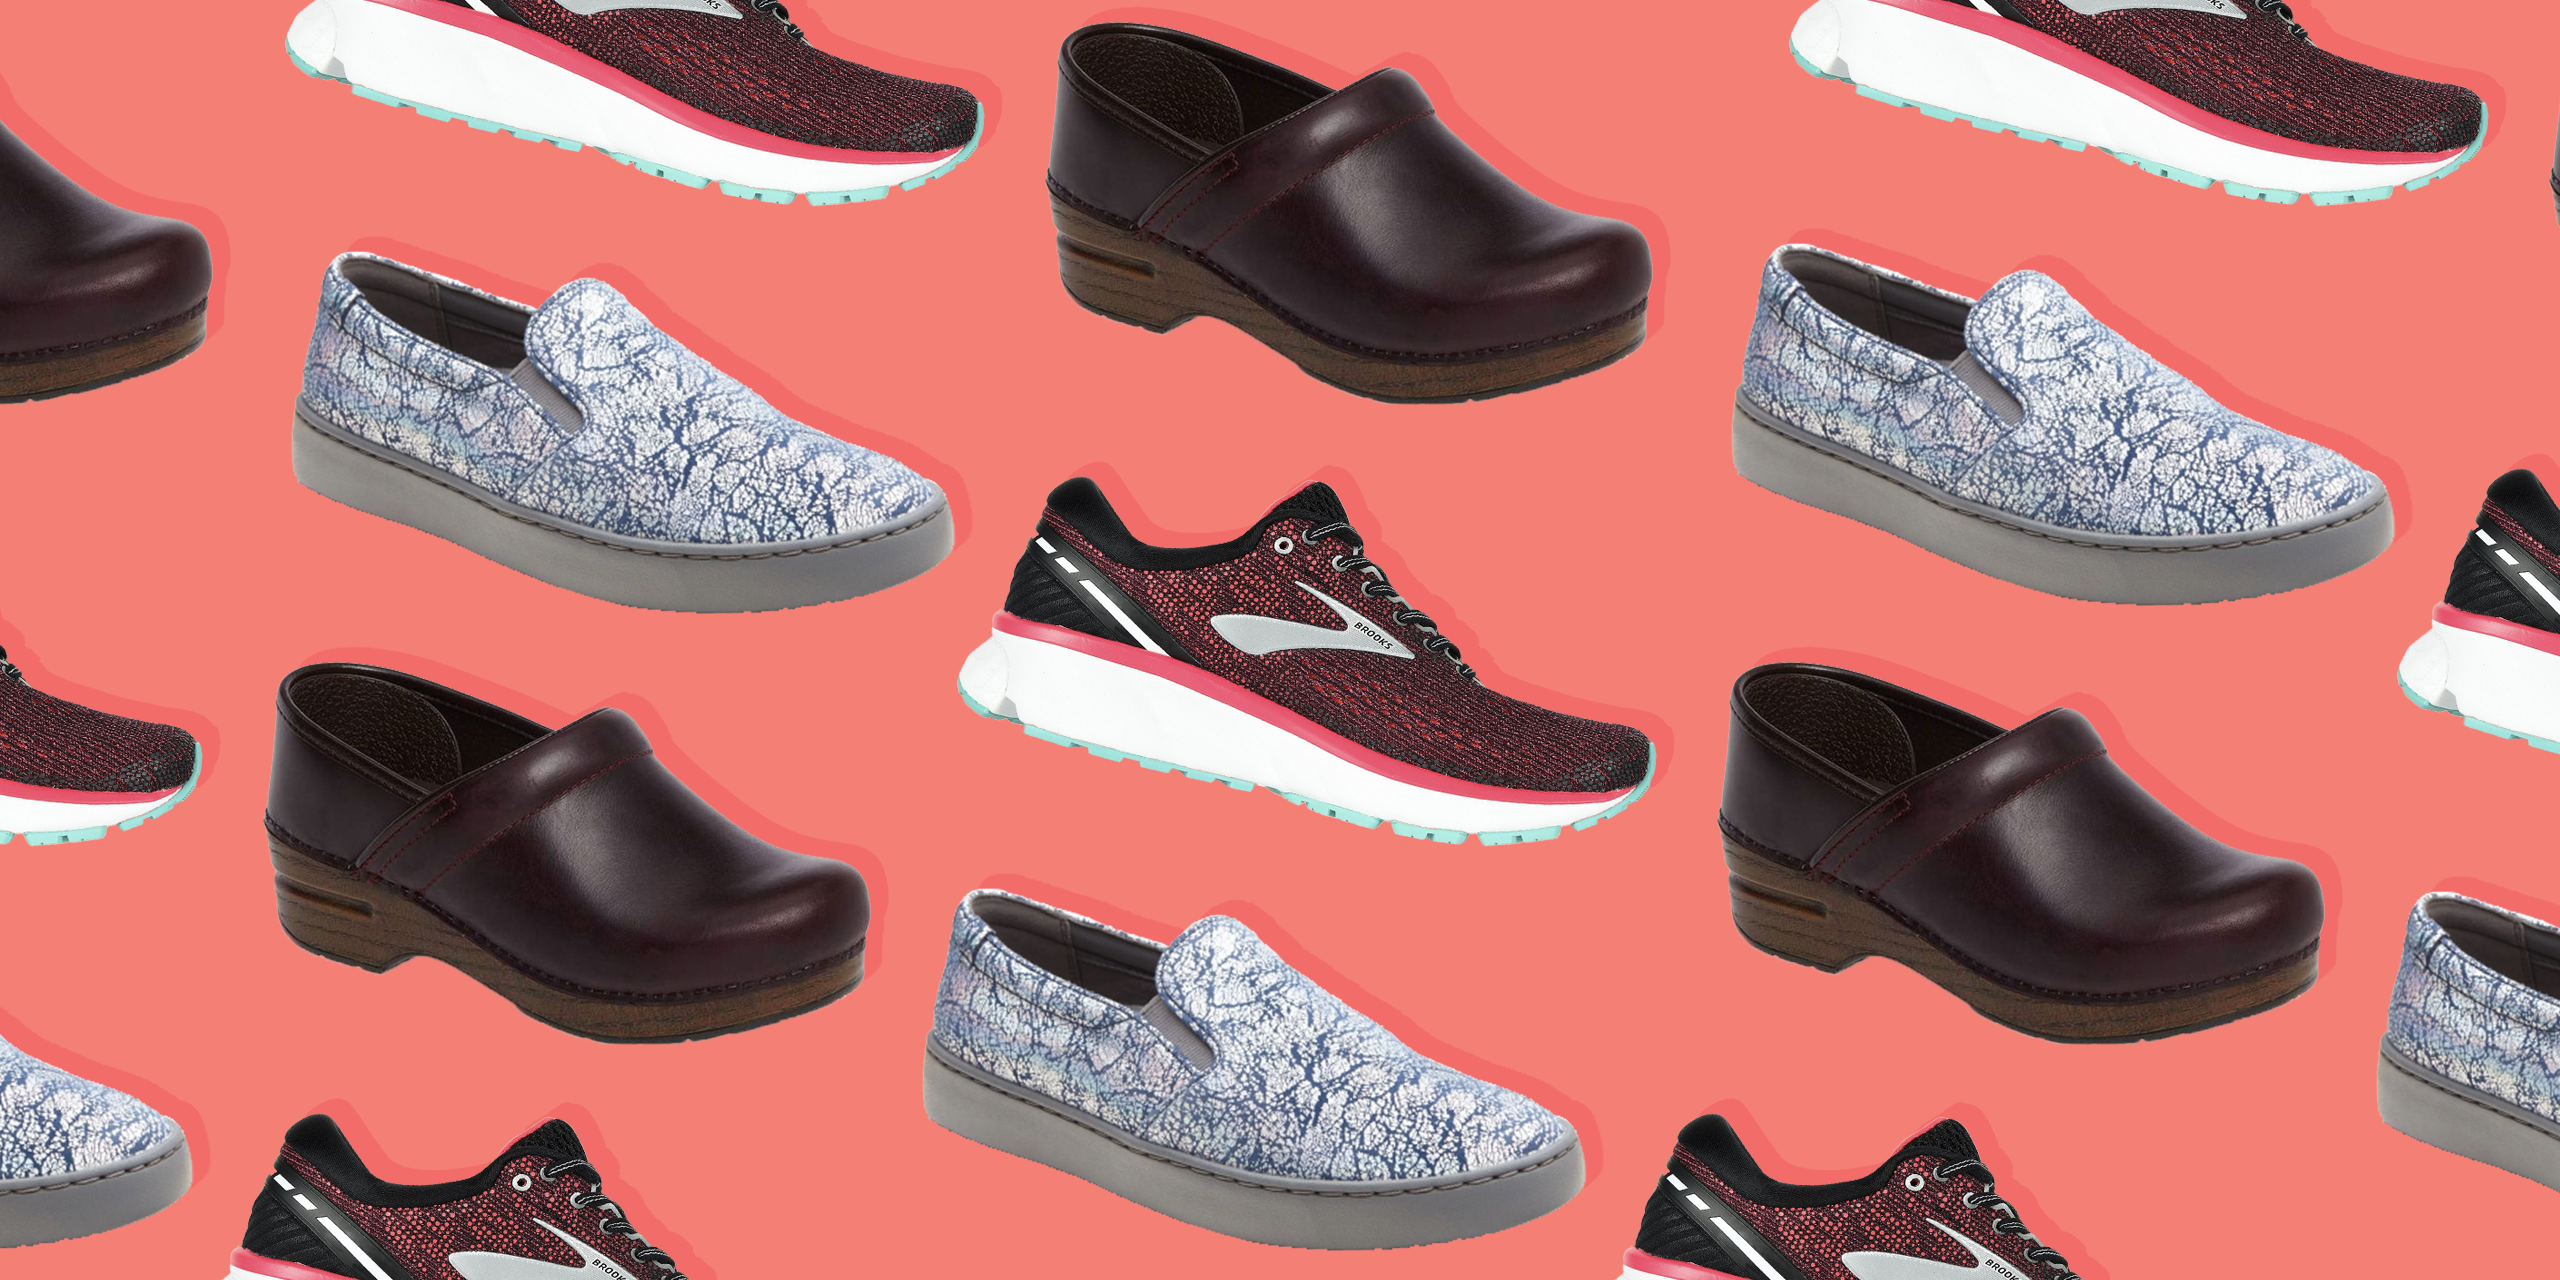 9 Best Shoes for Nurses \u0026 Standing All Day 2020, Say Podiatrists